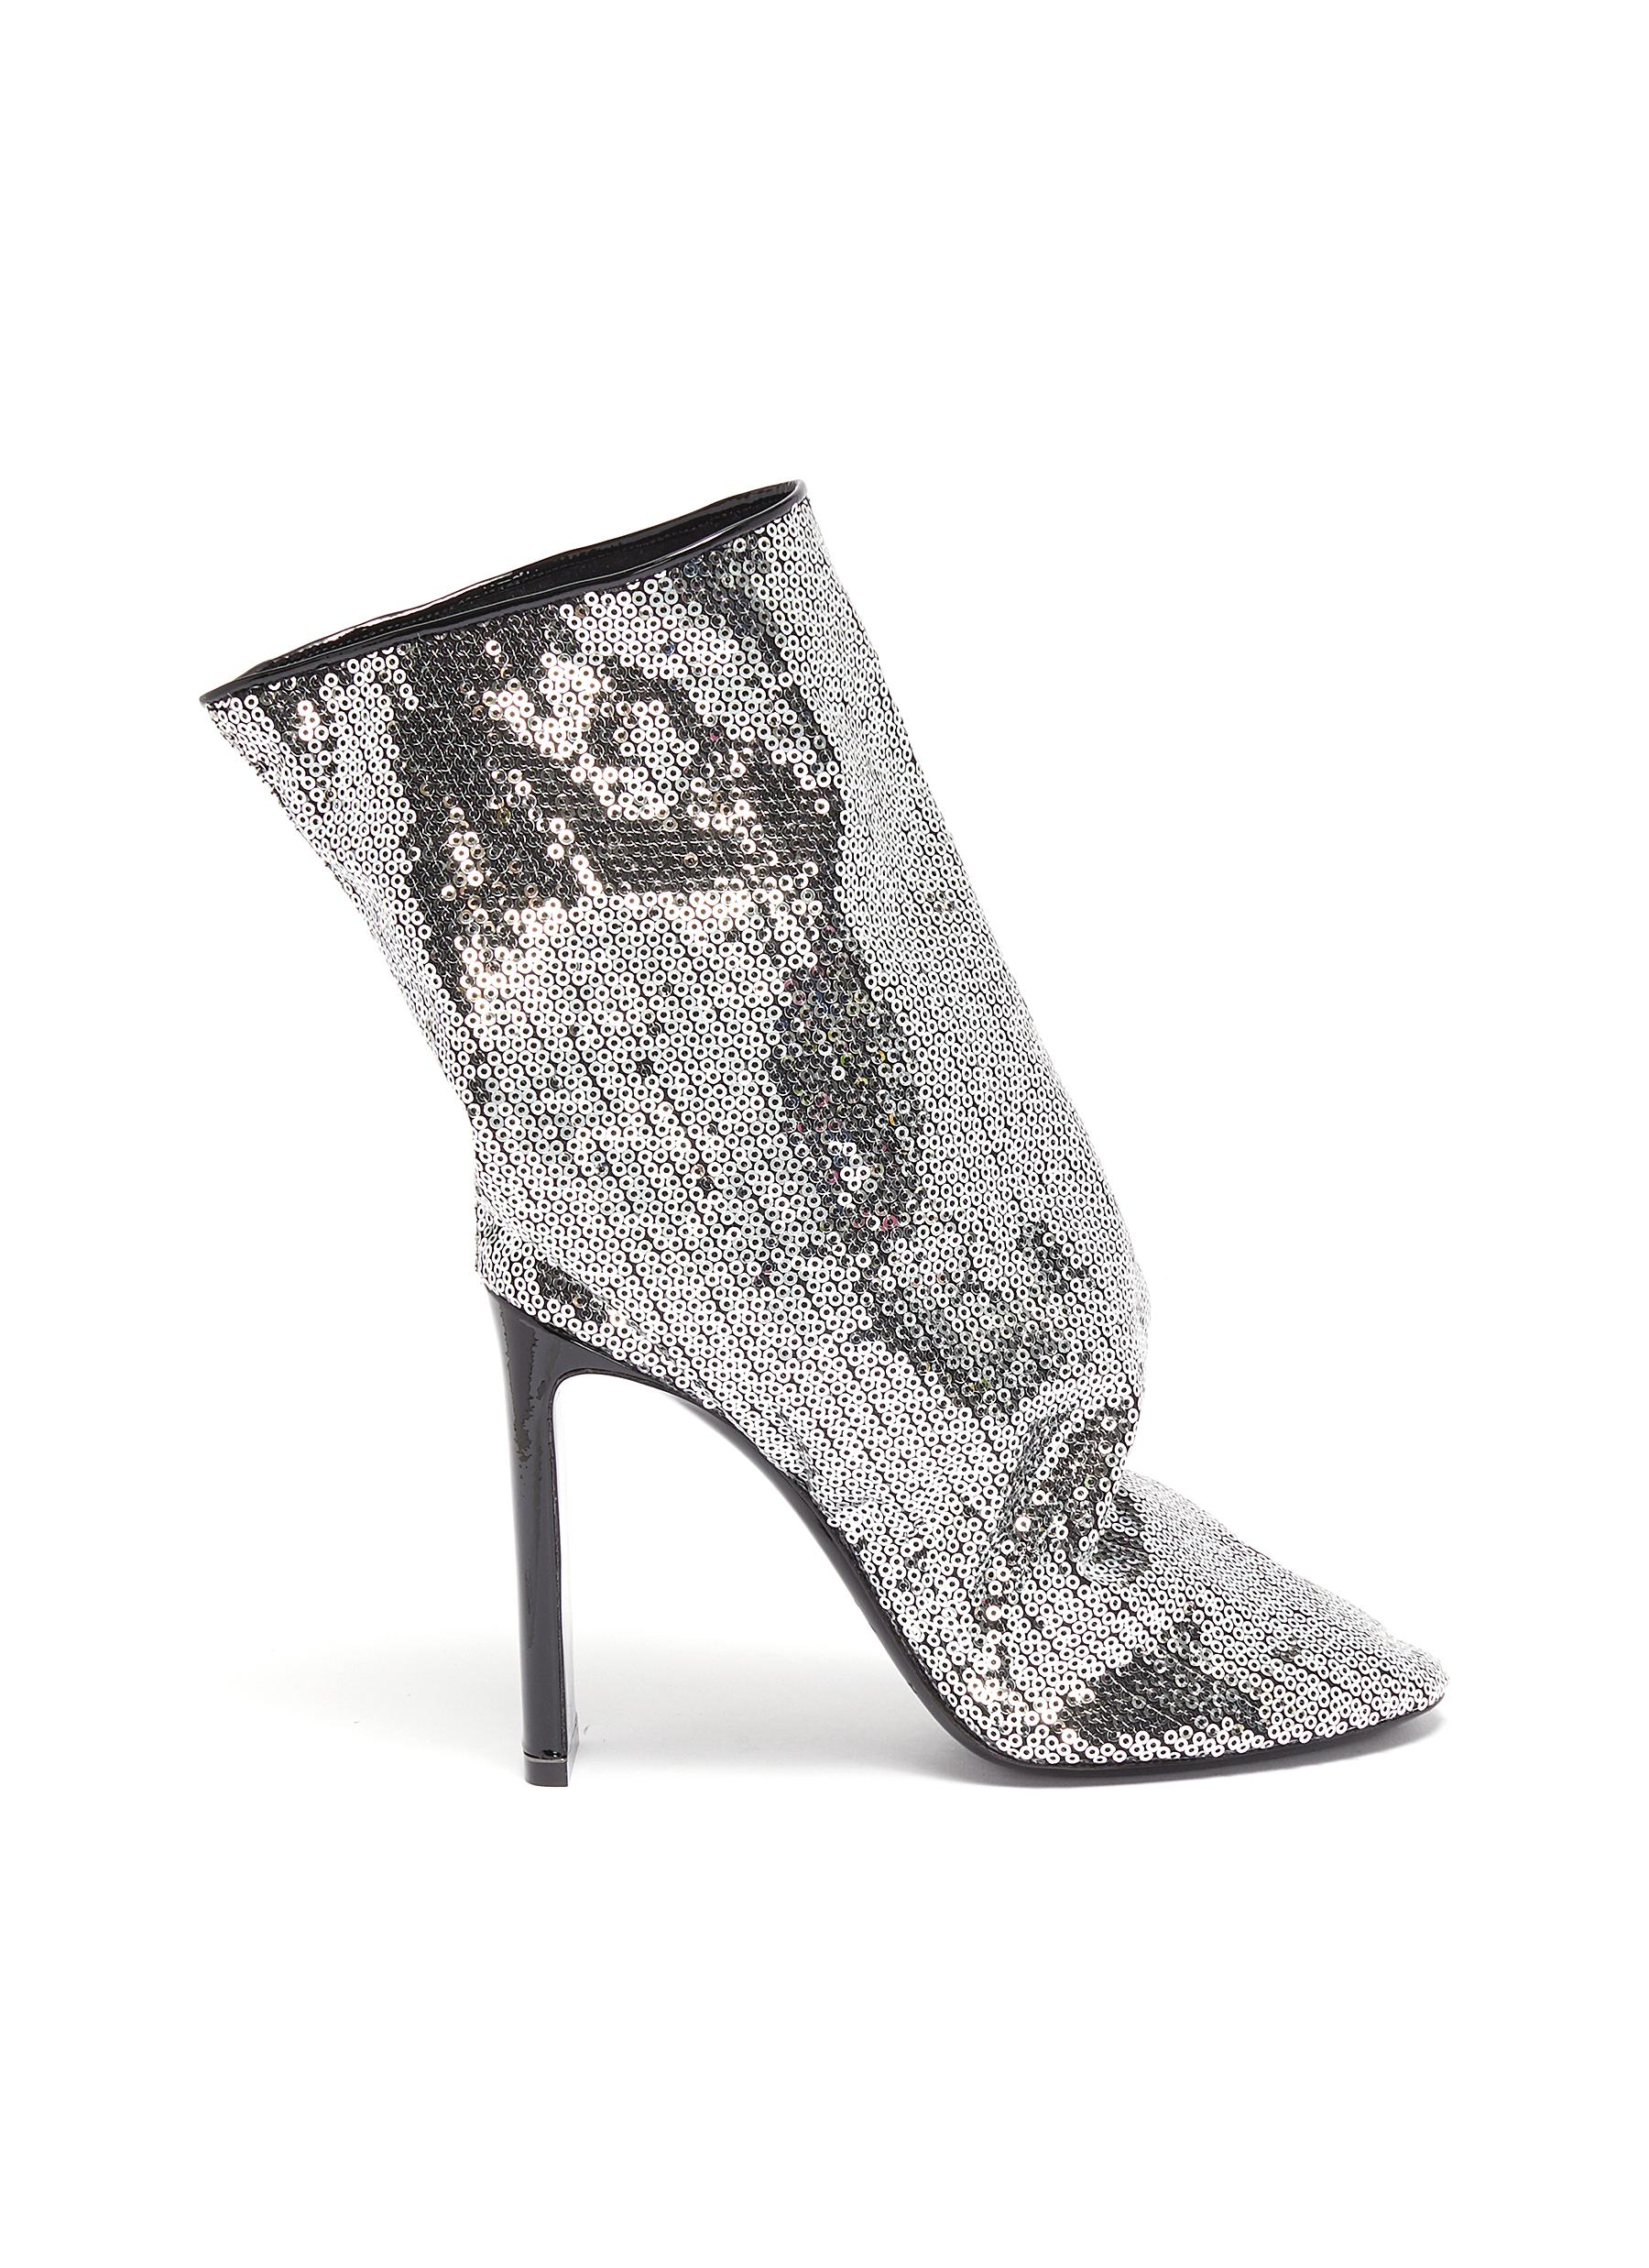 DArcy sequinned ankle boots by Nicholas Kirkwood